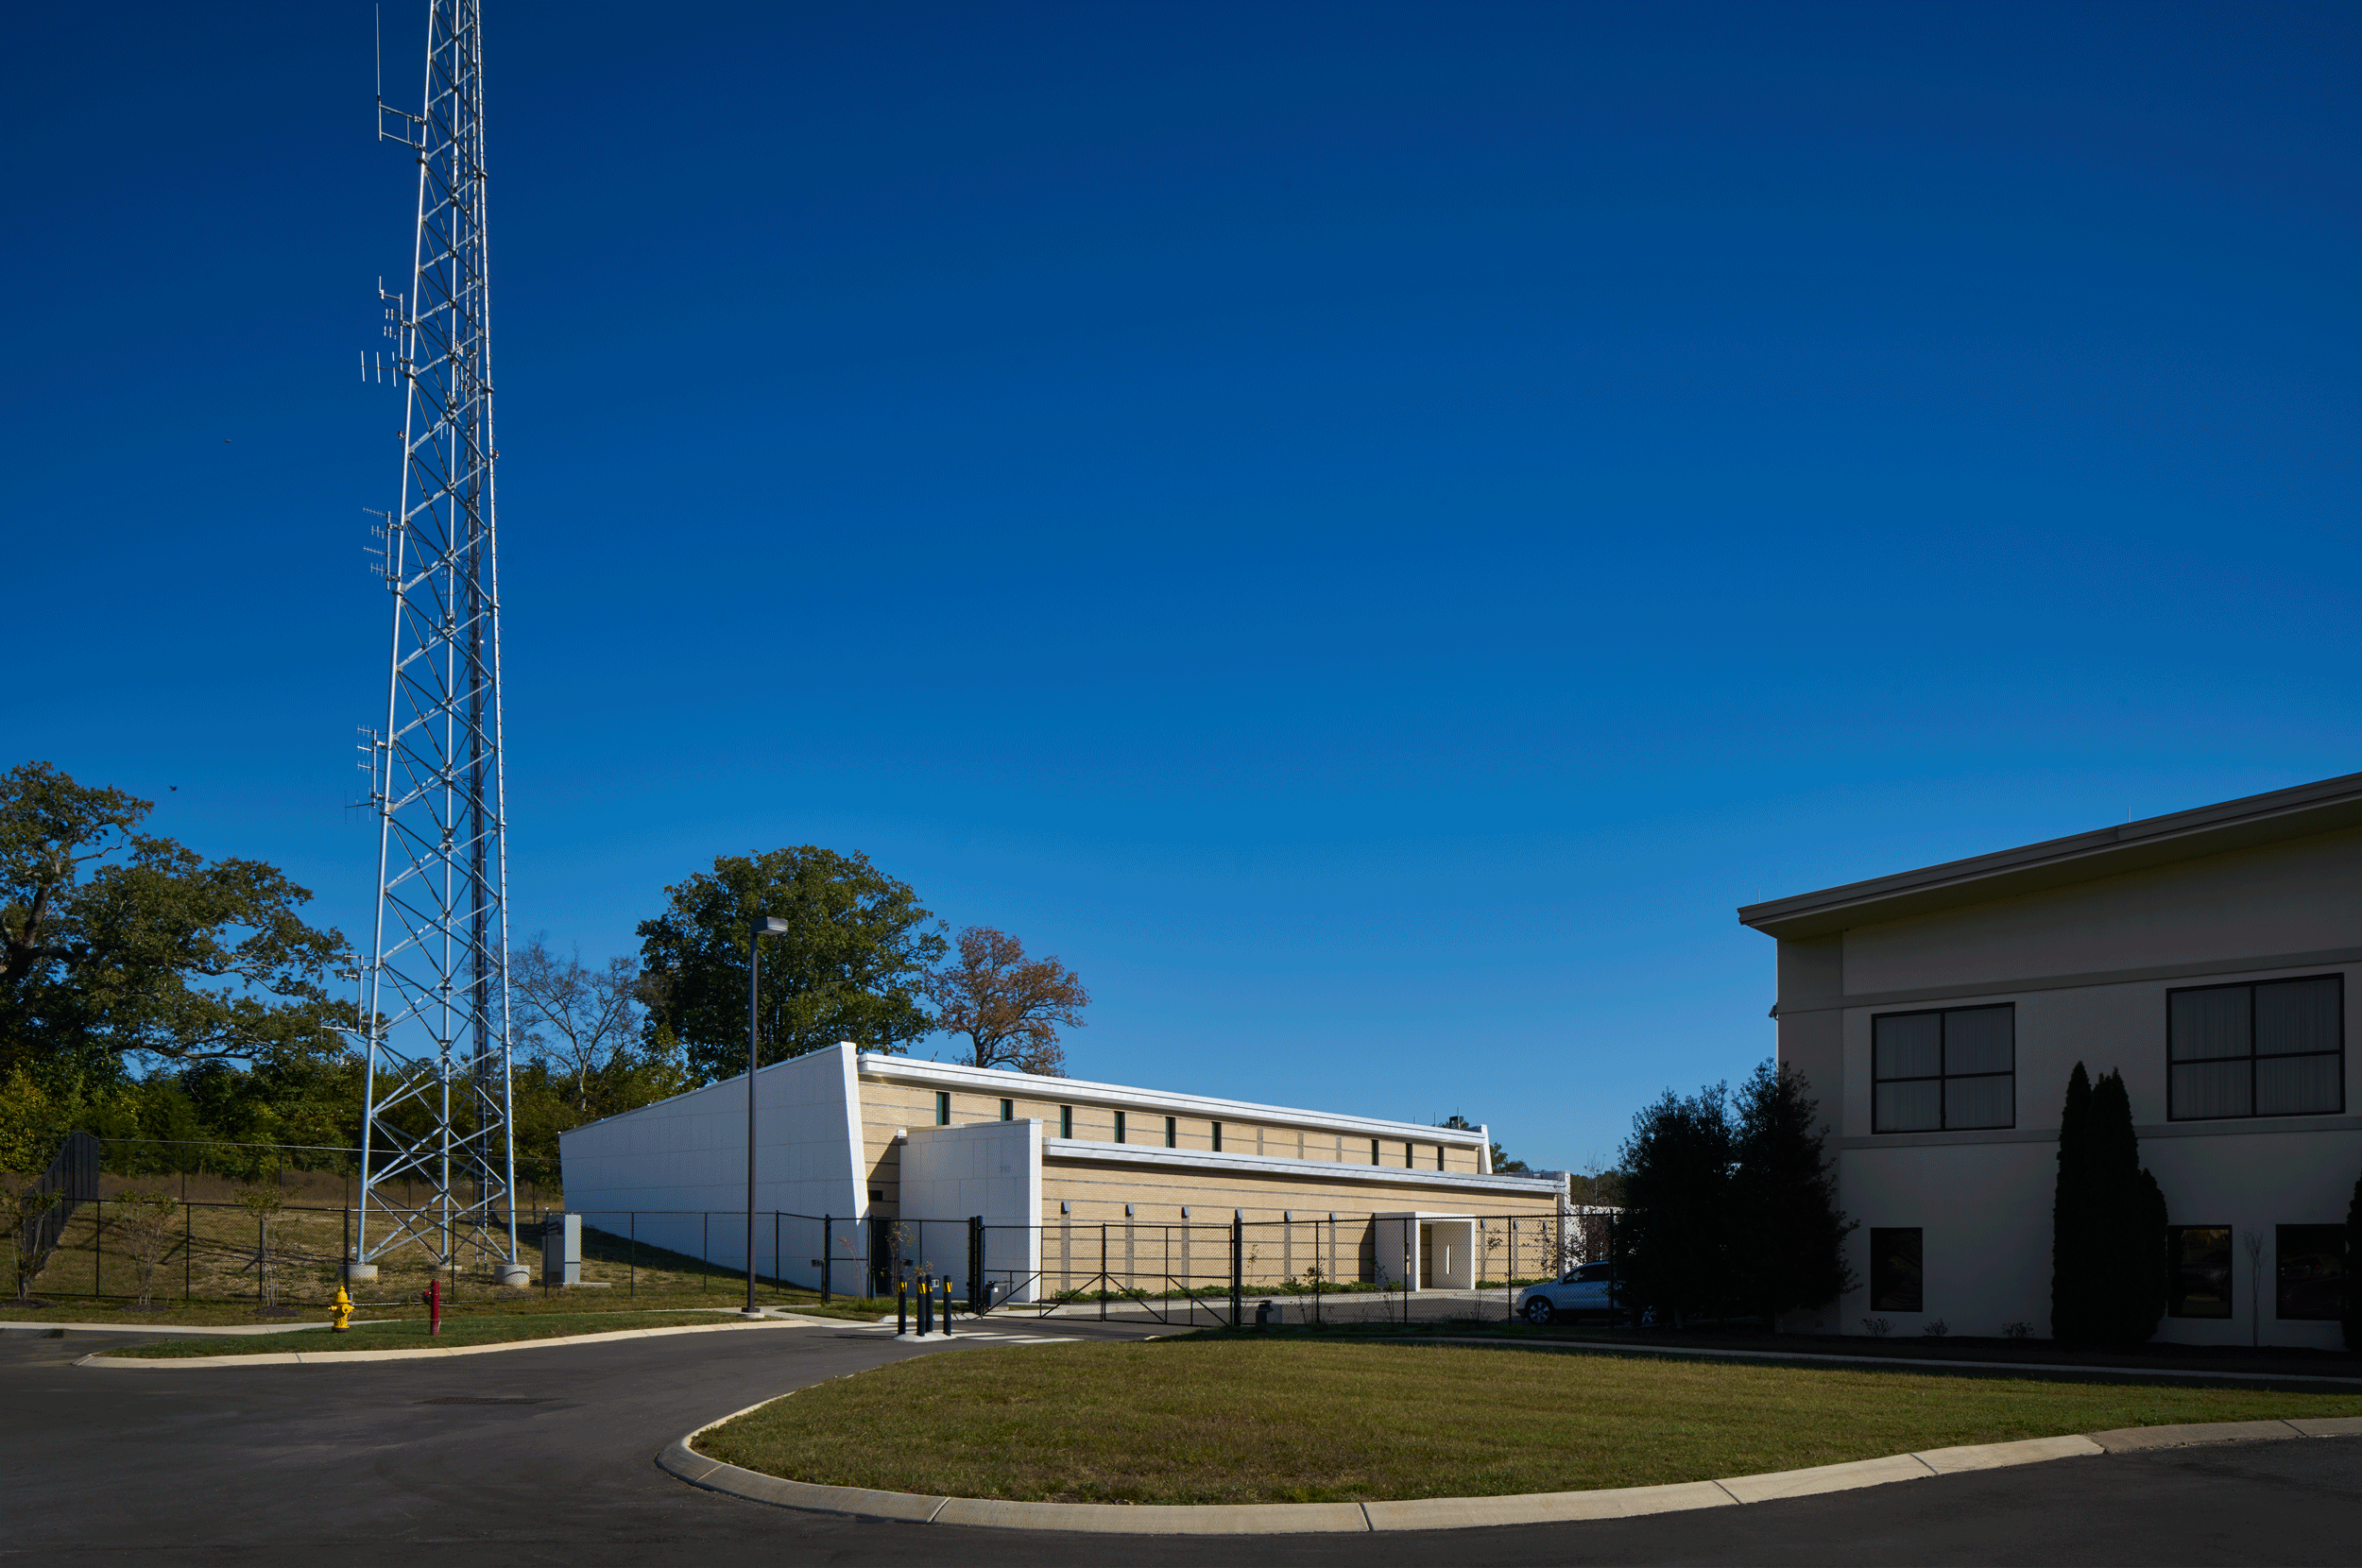 Sumner County Emergency Operations and Emergency Communication Center  Gallatin, Tennessee